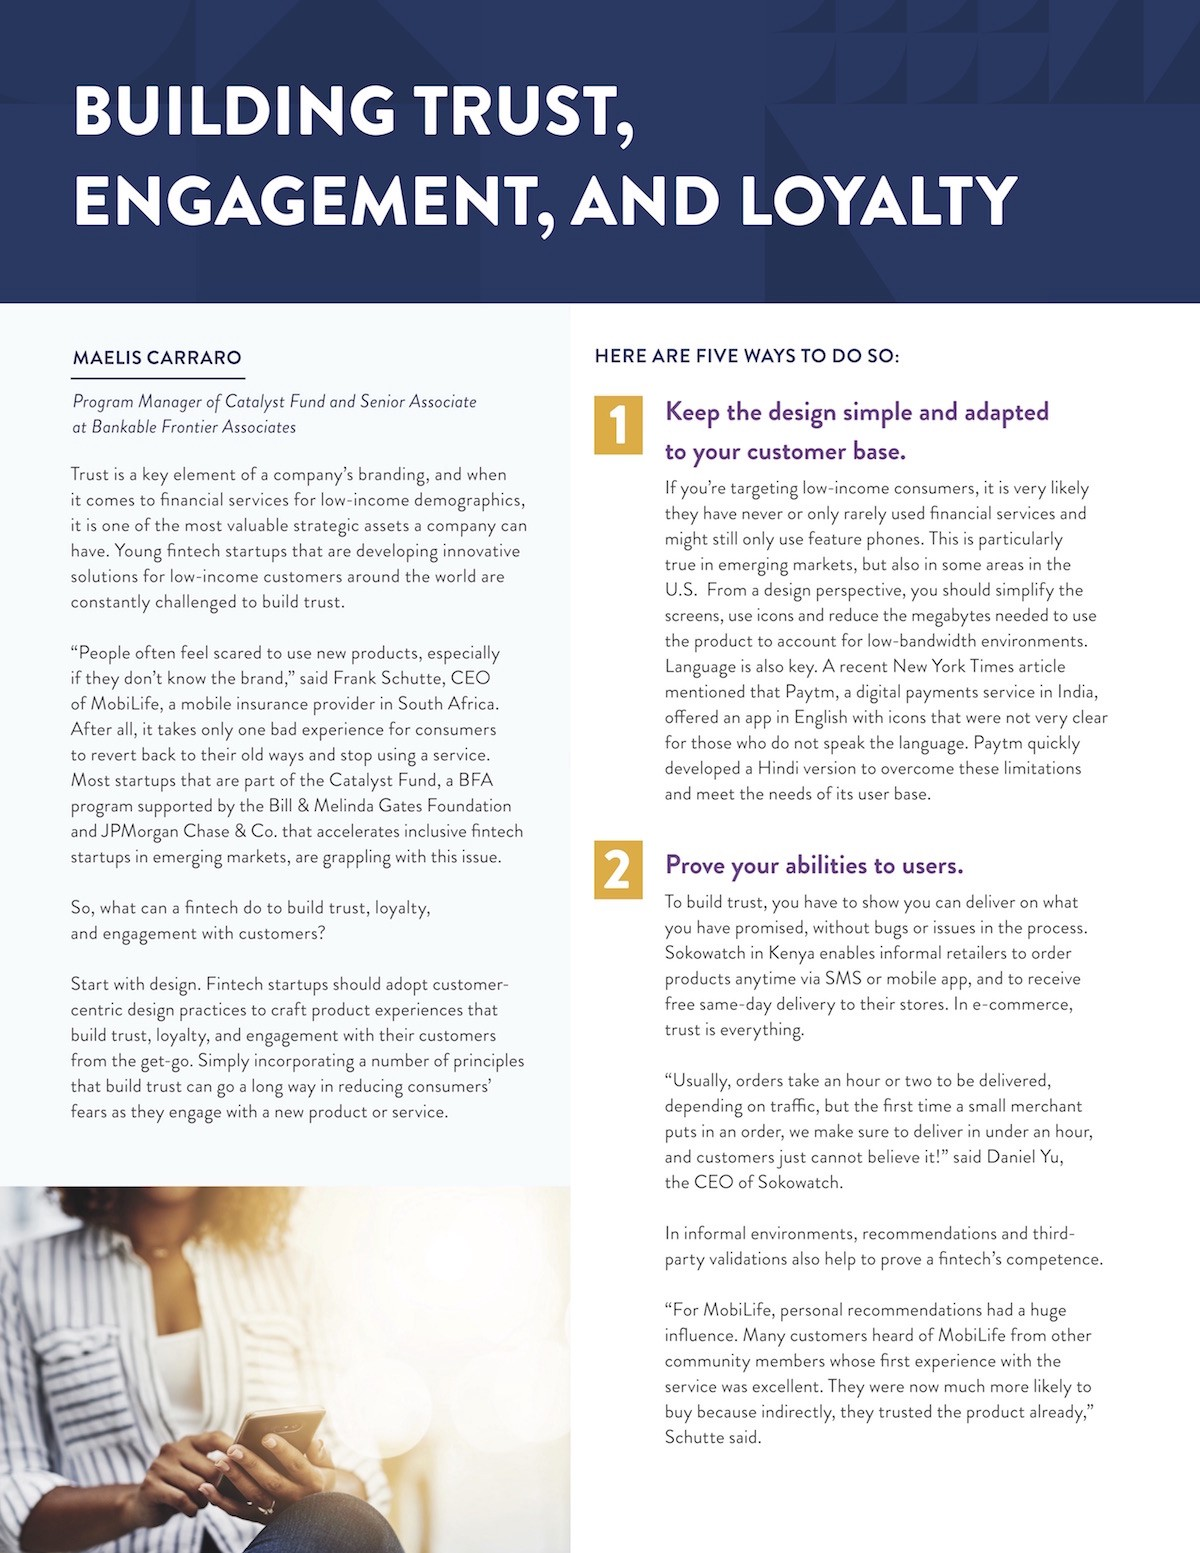 Building Trust, Engagement, and Loyalty: Five Ways to